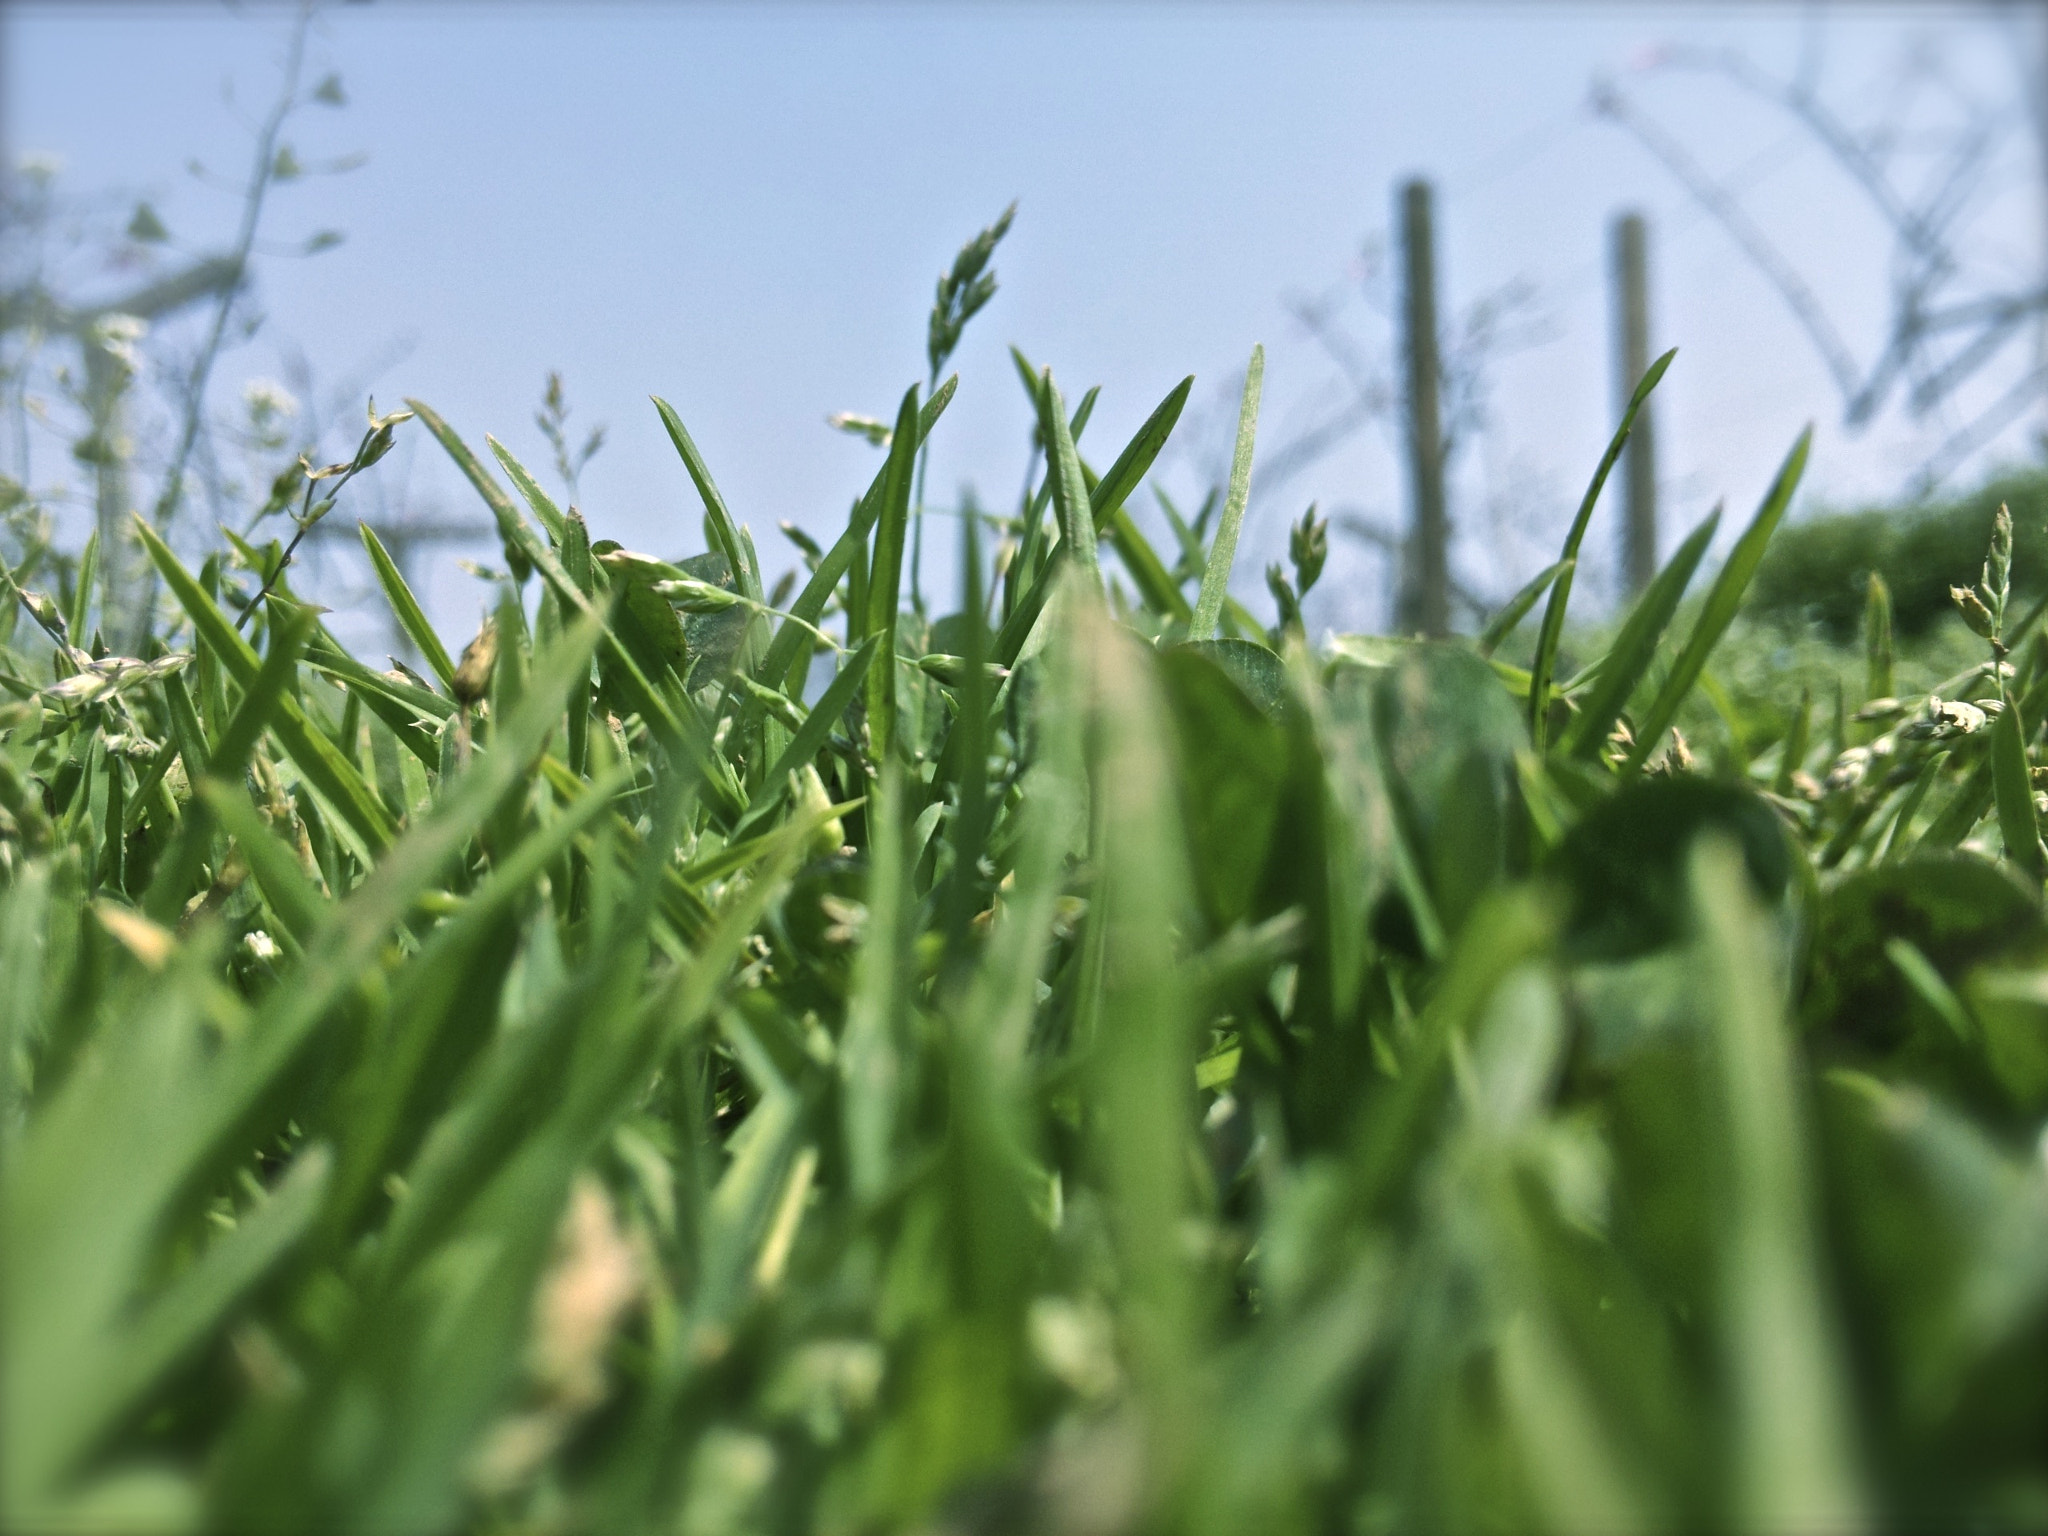 Photograph grass by pgang_96 on 500px